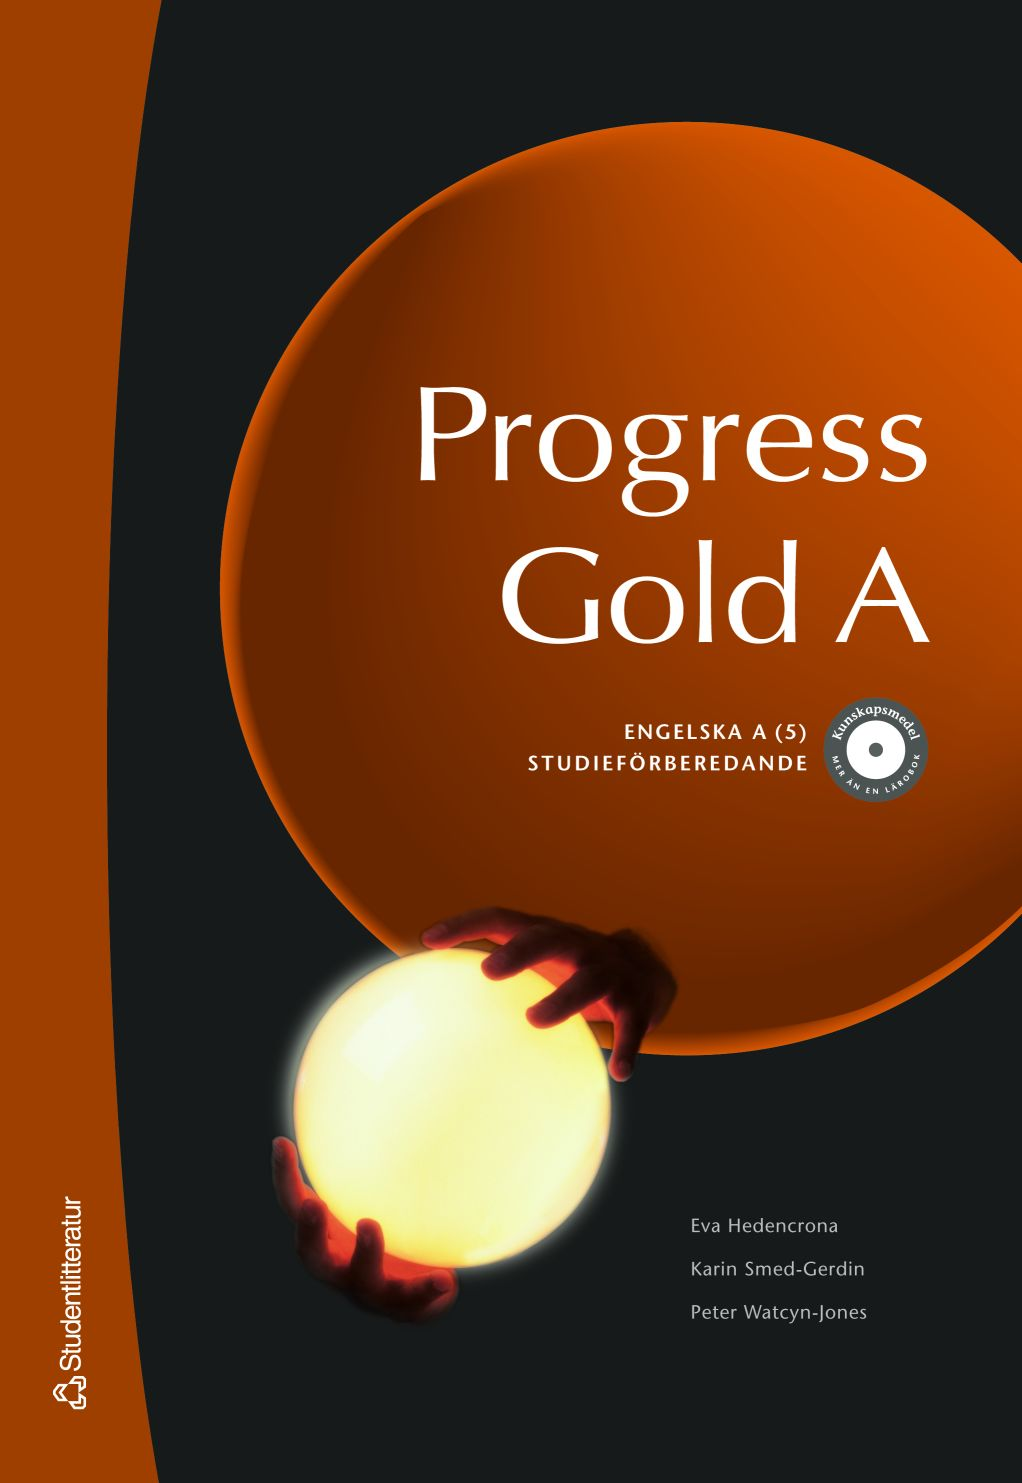 Progress Gold A.